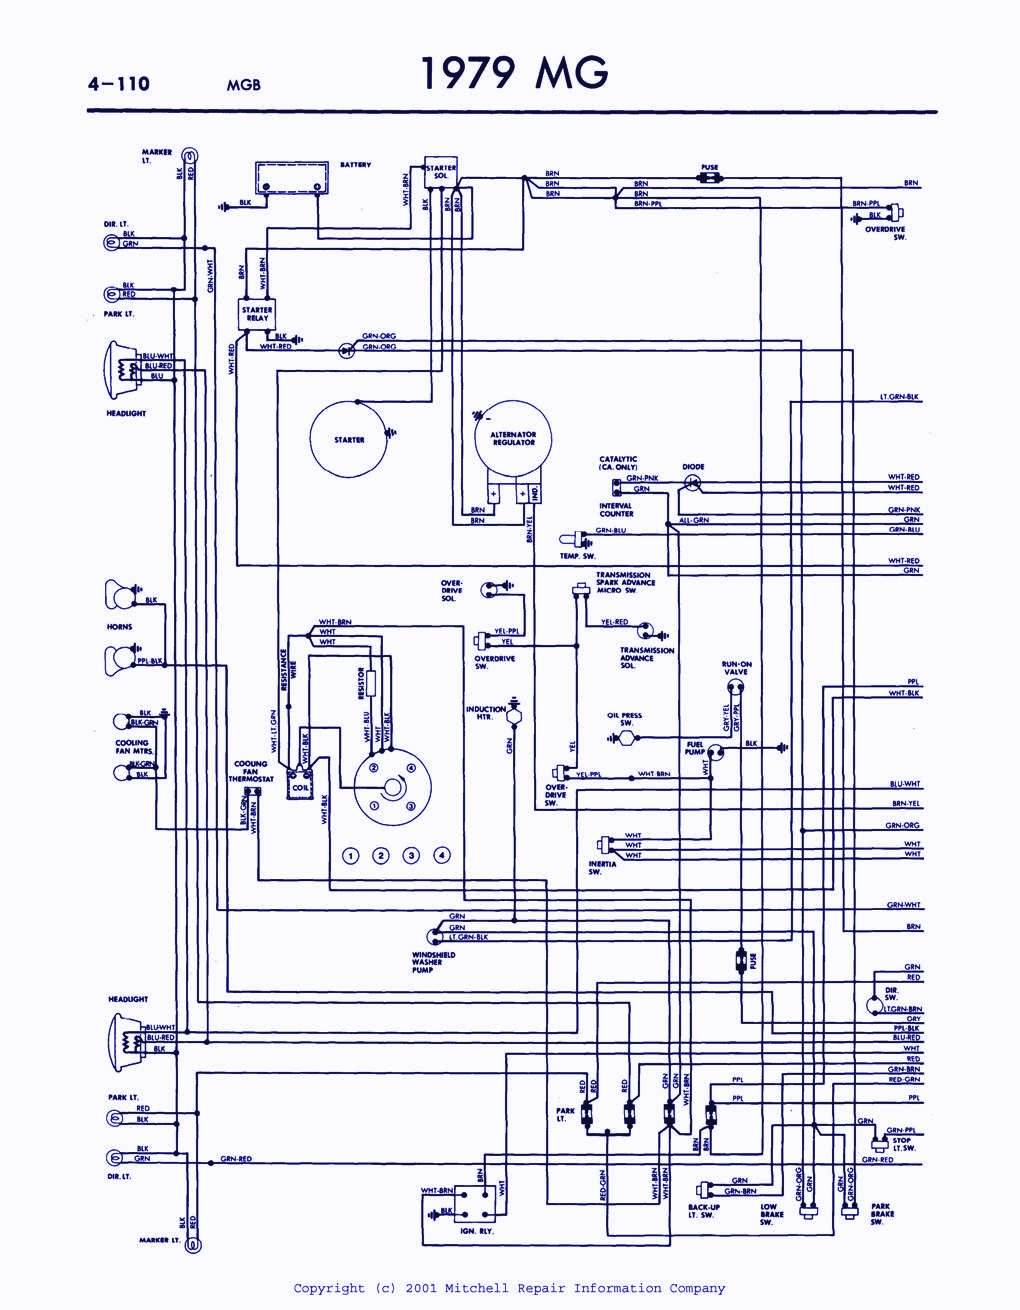 1979 mg mgb wiring diagram | schematic diagram wiring 1970 mustang wiring schematic for lights #13